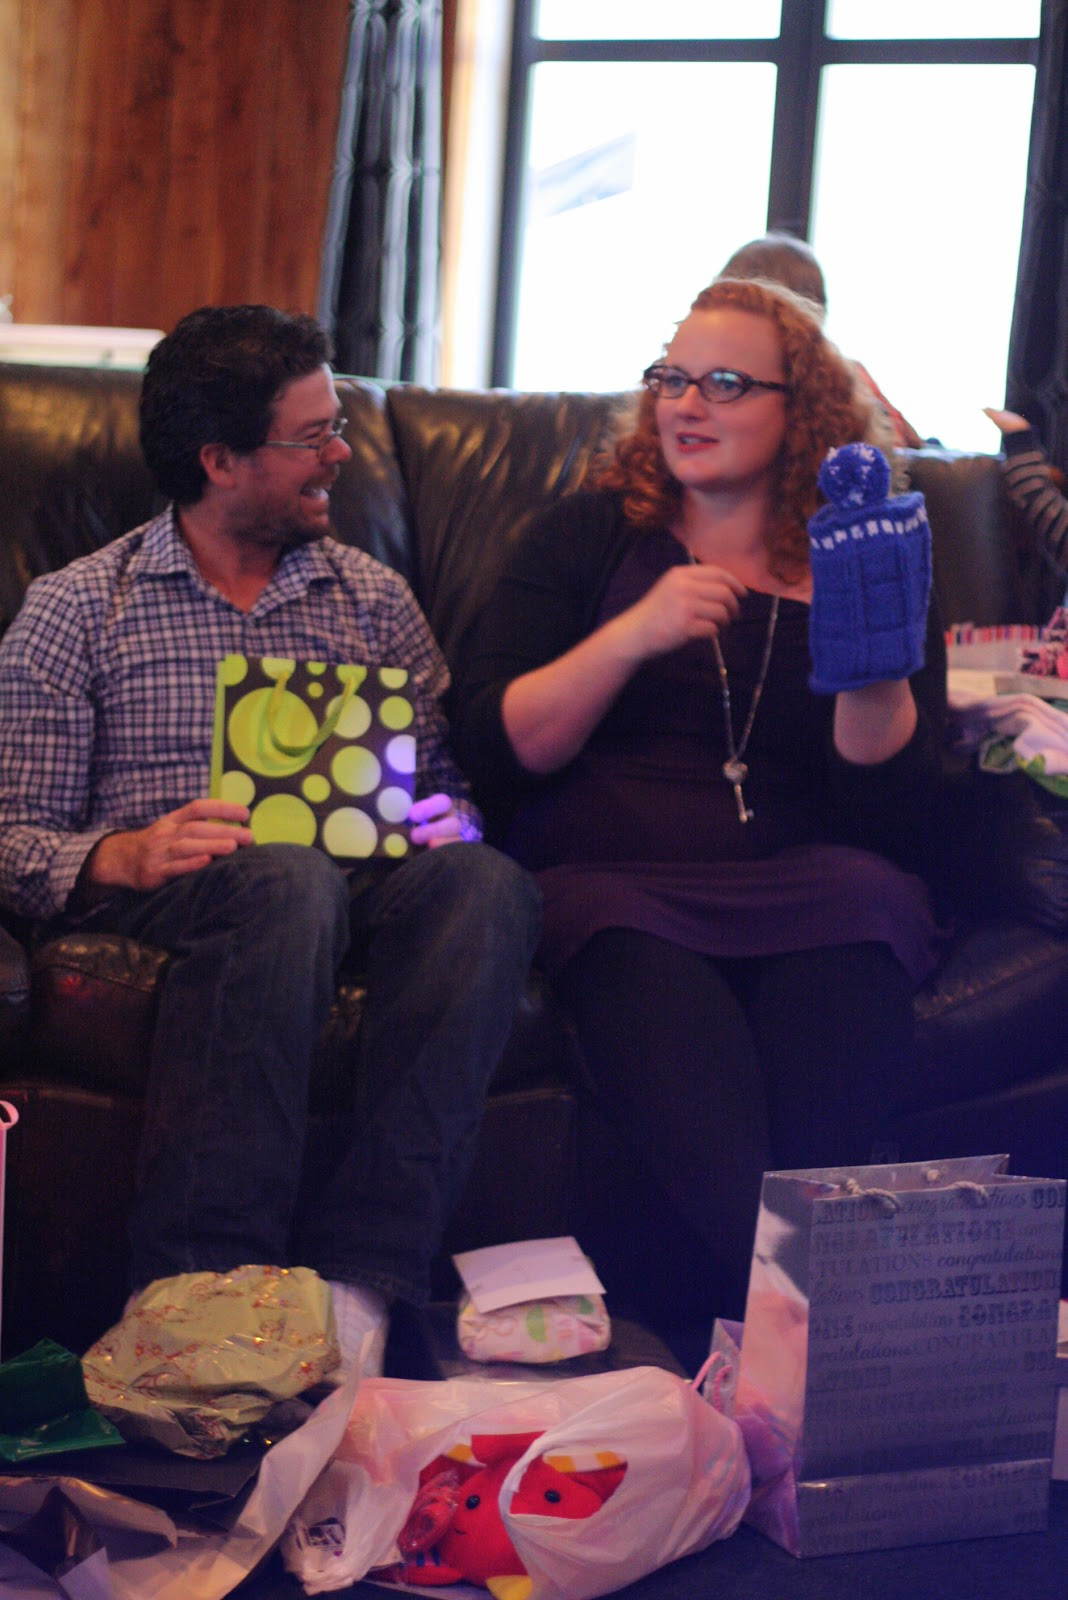 Jenn and Zac opening gifts, smiling.